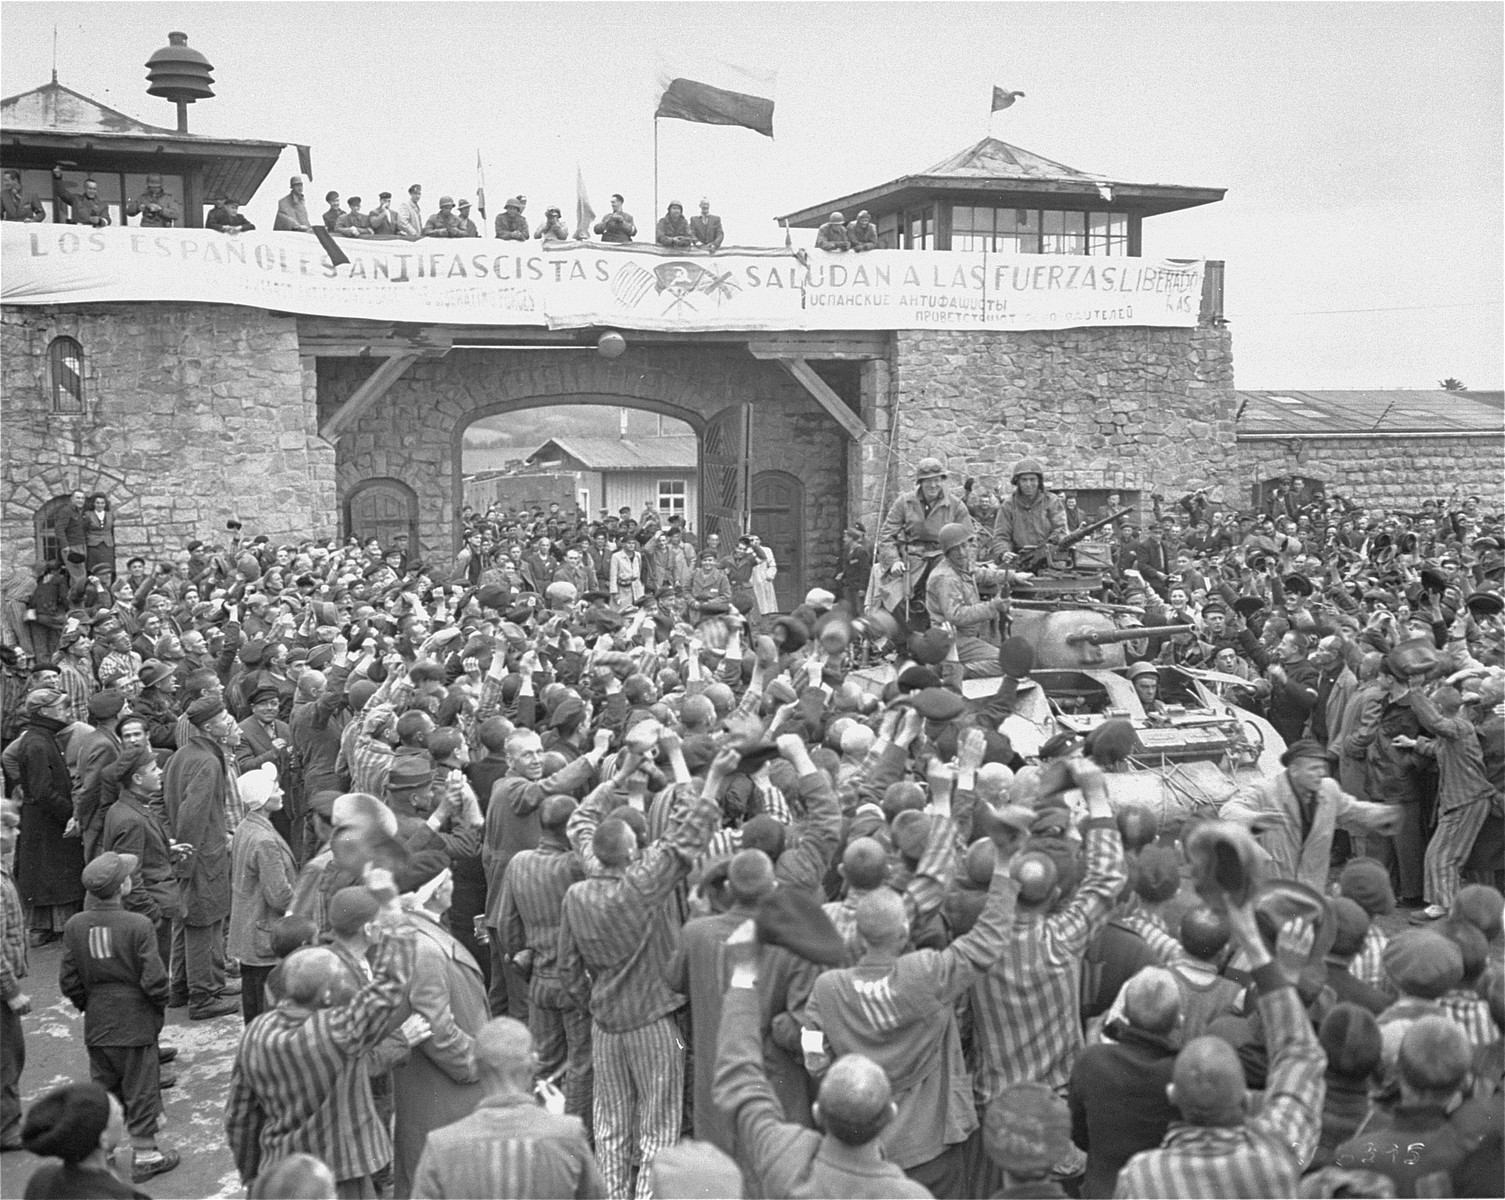 "Mauthausen survivors cheer the soldiers of the Eleventh Armored Division of the U.S. Third Army one day after their actual liberation.   The banner reads: ""The Spanish Anti-Fascists Salute the Liberating Forces.""  According to Pierre Serge Choumoff, a survivor of Mauthausen and Gusen, this event was recreated at the request of a senior American officer.  The photographer Francisco Boix can be seen with his camera standing on top of the entrance.  According to the 11th Armored Division website the solders are John Slatton (back left), Jerome Rosenthal (back right), William Picket (left) and Edward Czarnowski (driver).  Alternatively Robert Mordis, a Jewish soldier from Natick Massachusetts, may be on the upper left side of the tank, and another soldier may be Alfred Paliani."